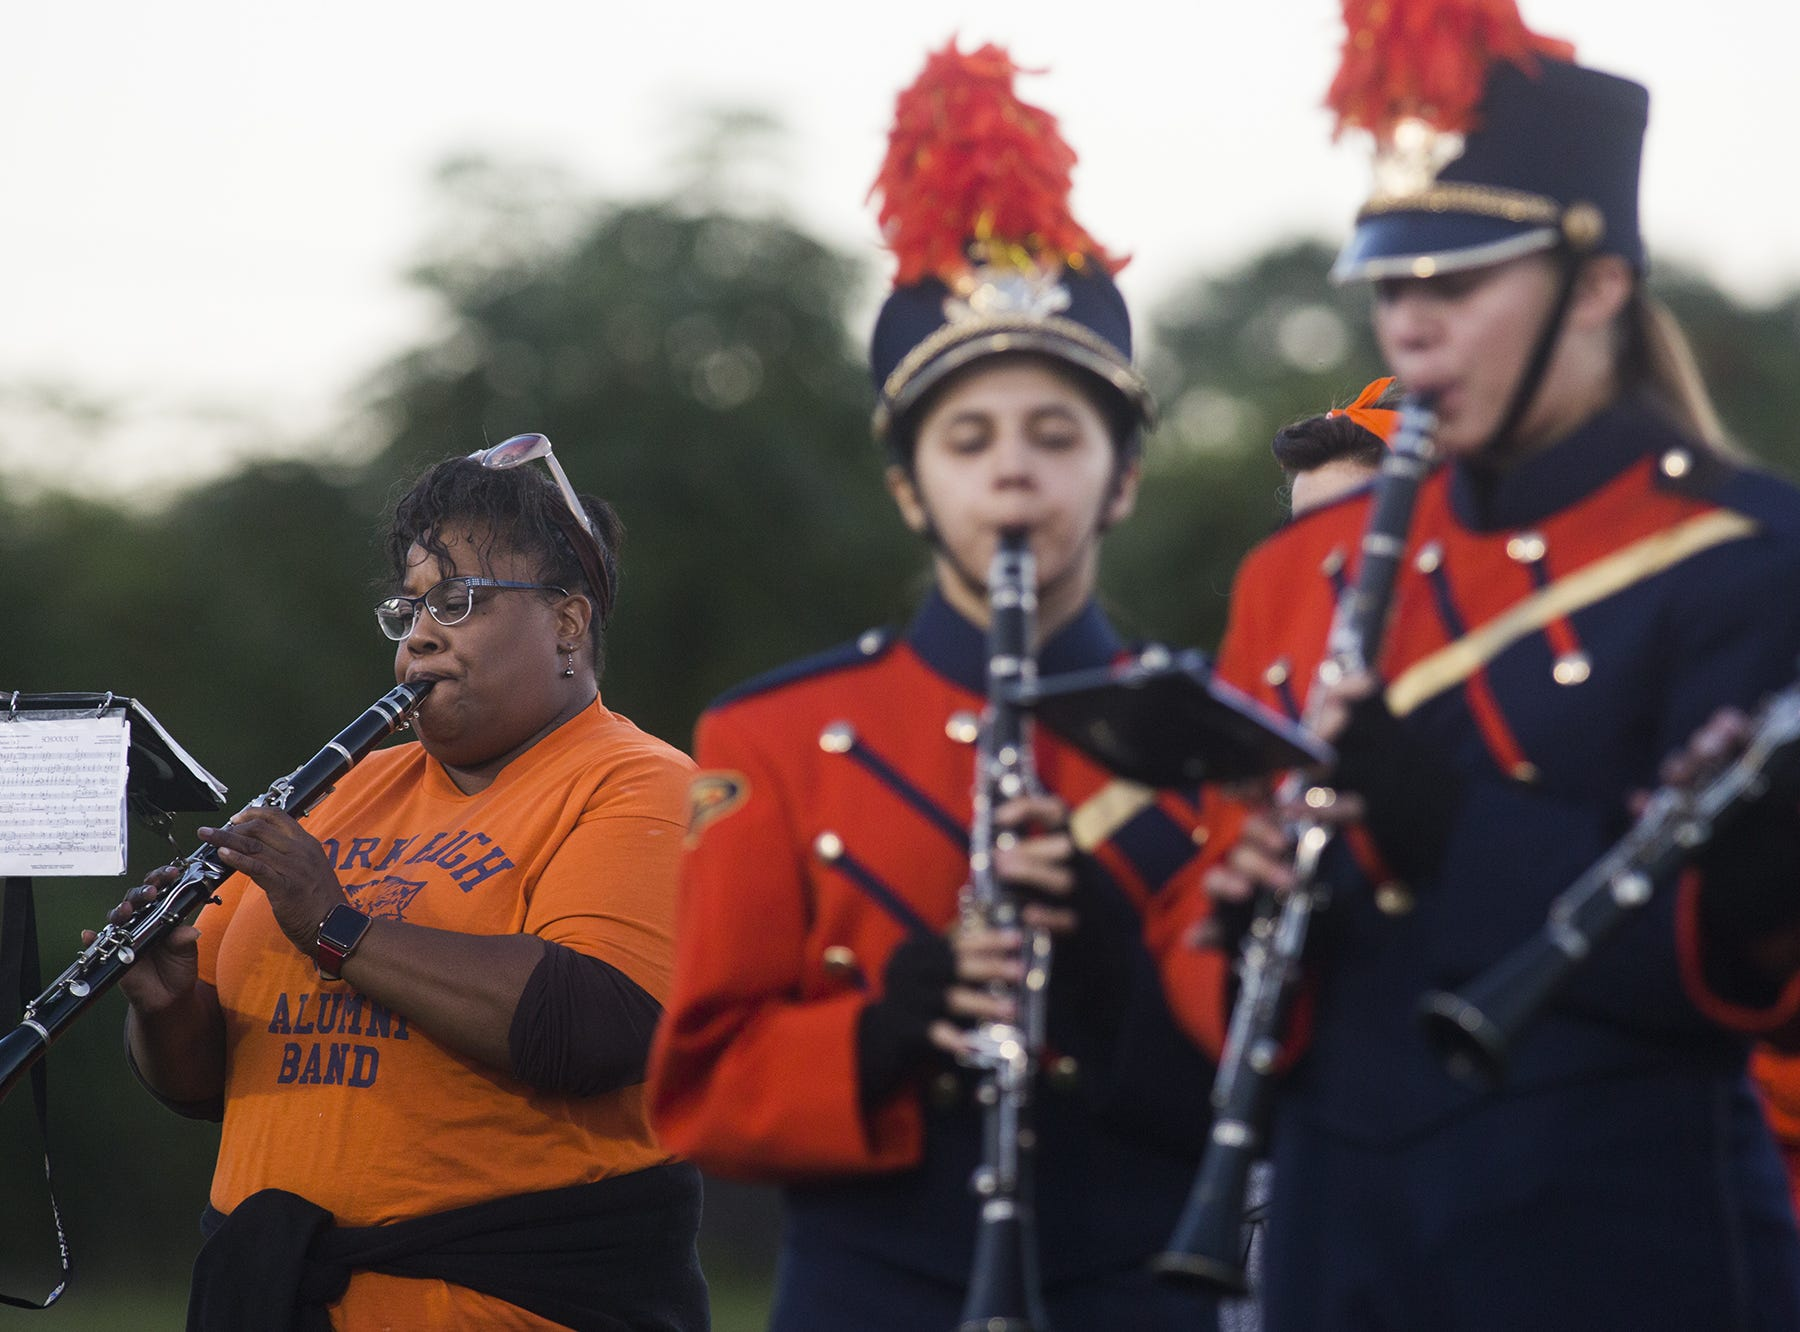 York High band alumni play with the York High School marching band prior to the game. York High hosted Dallastown in football at Small Athletic Field in York, Friday, September 28, 2018.